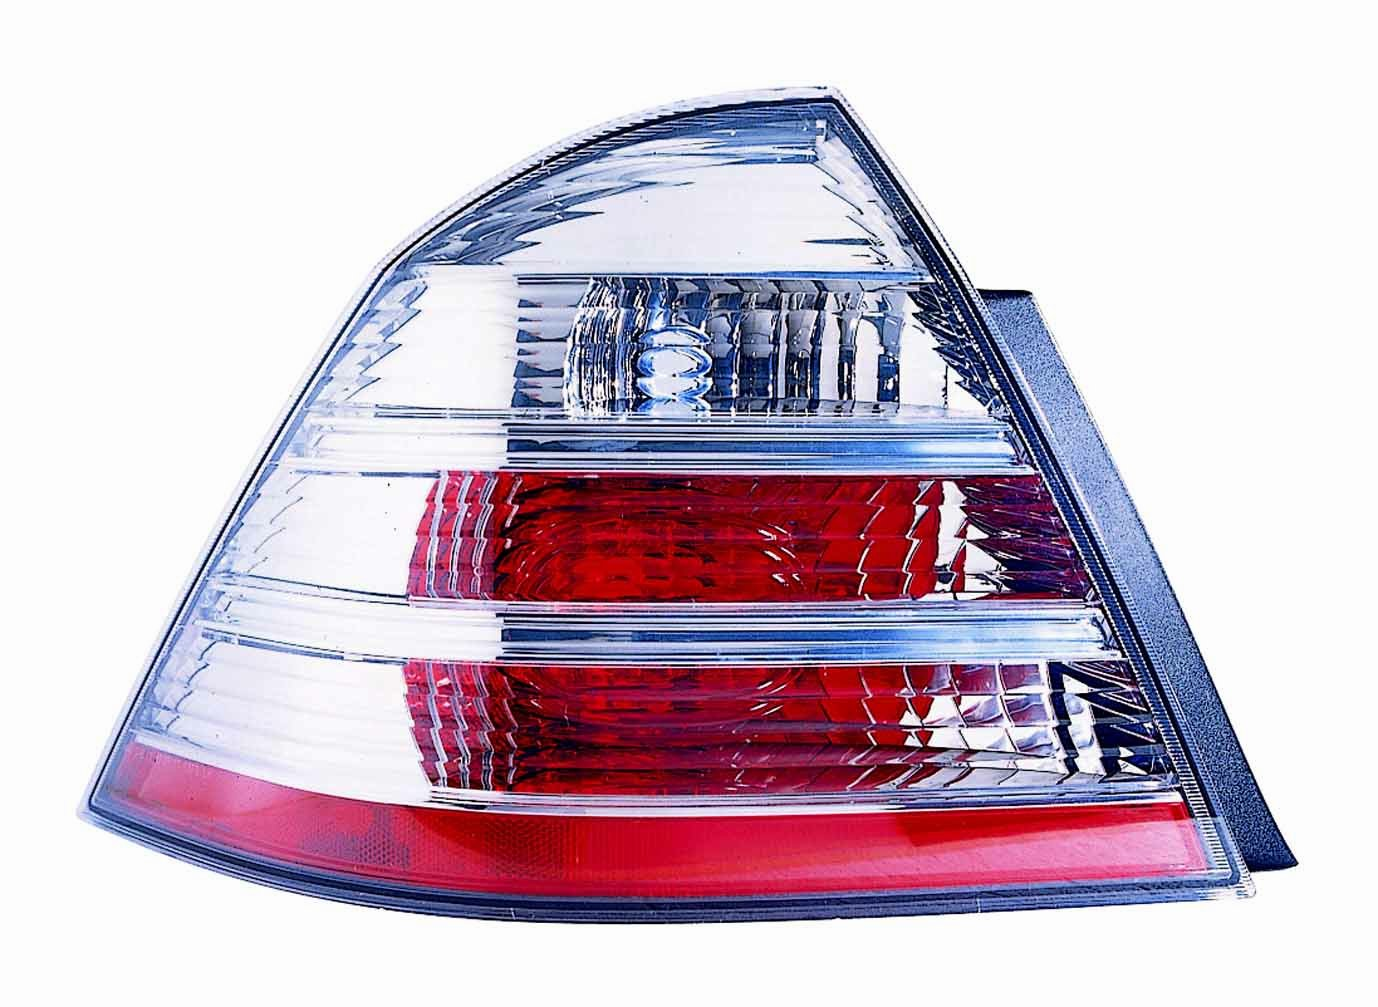 Depo 330-1939L-US Ford Taurus Driver Side Tail Lamp Lens and Housing